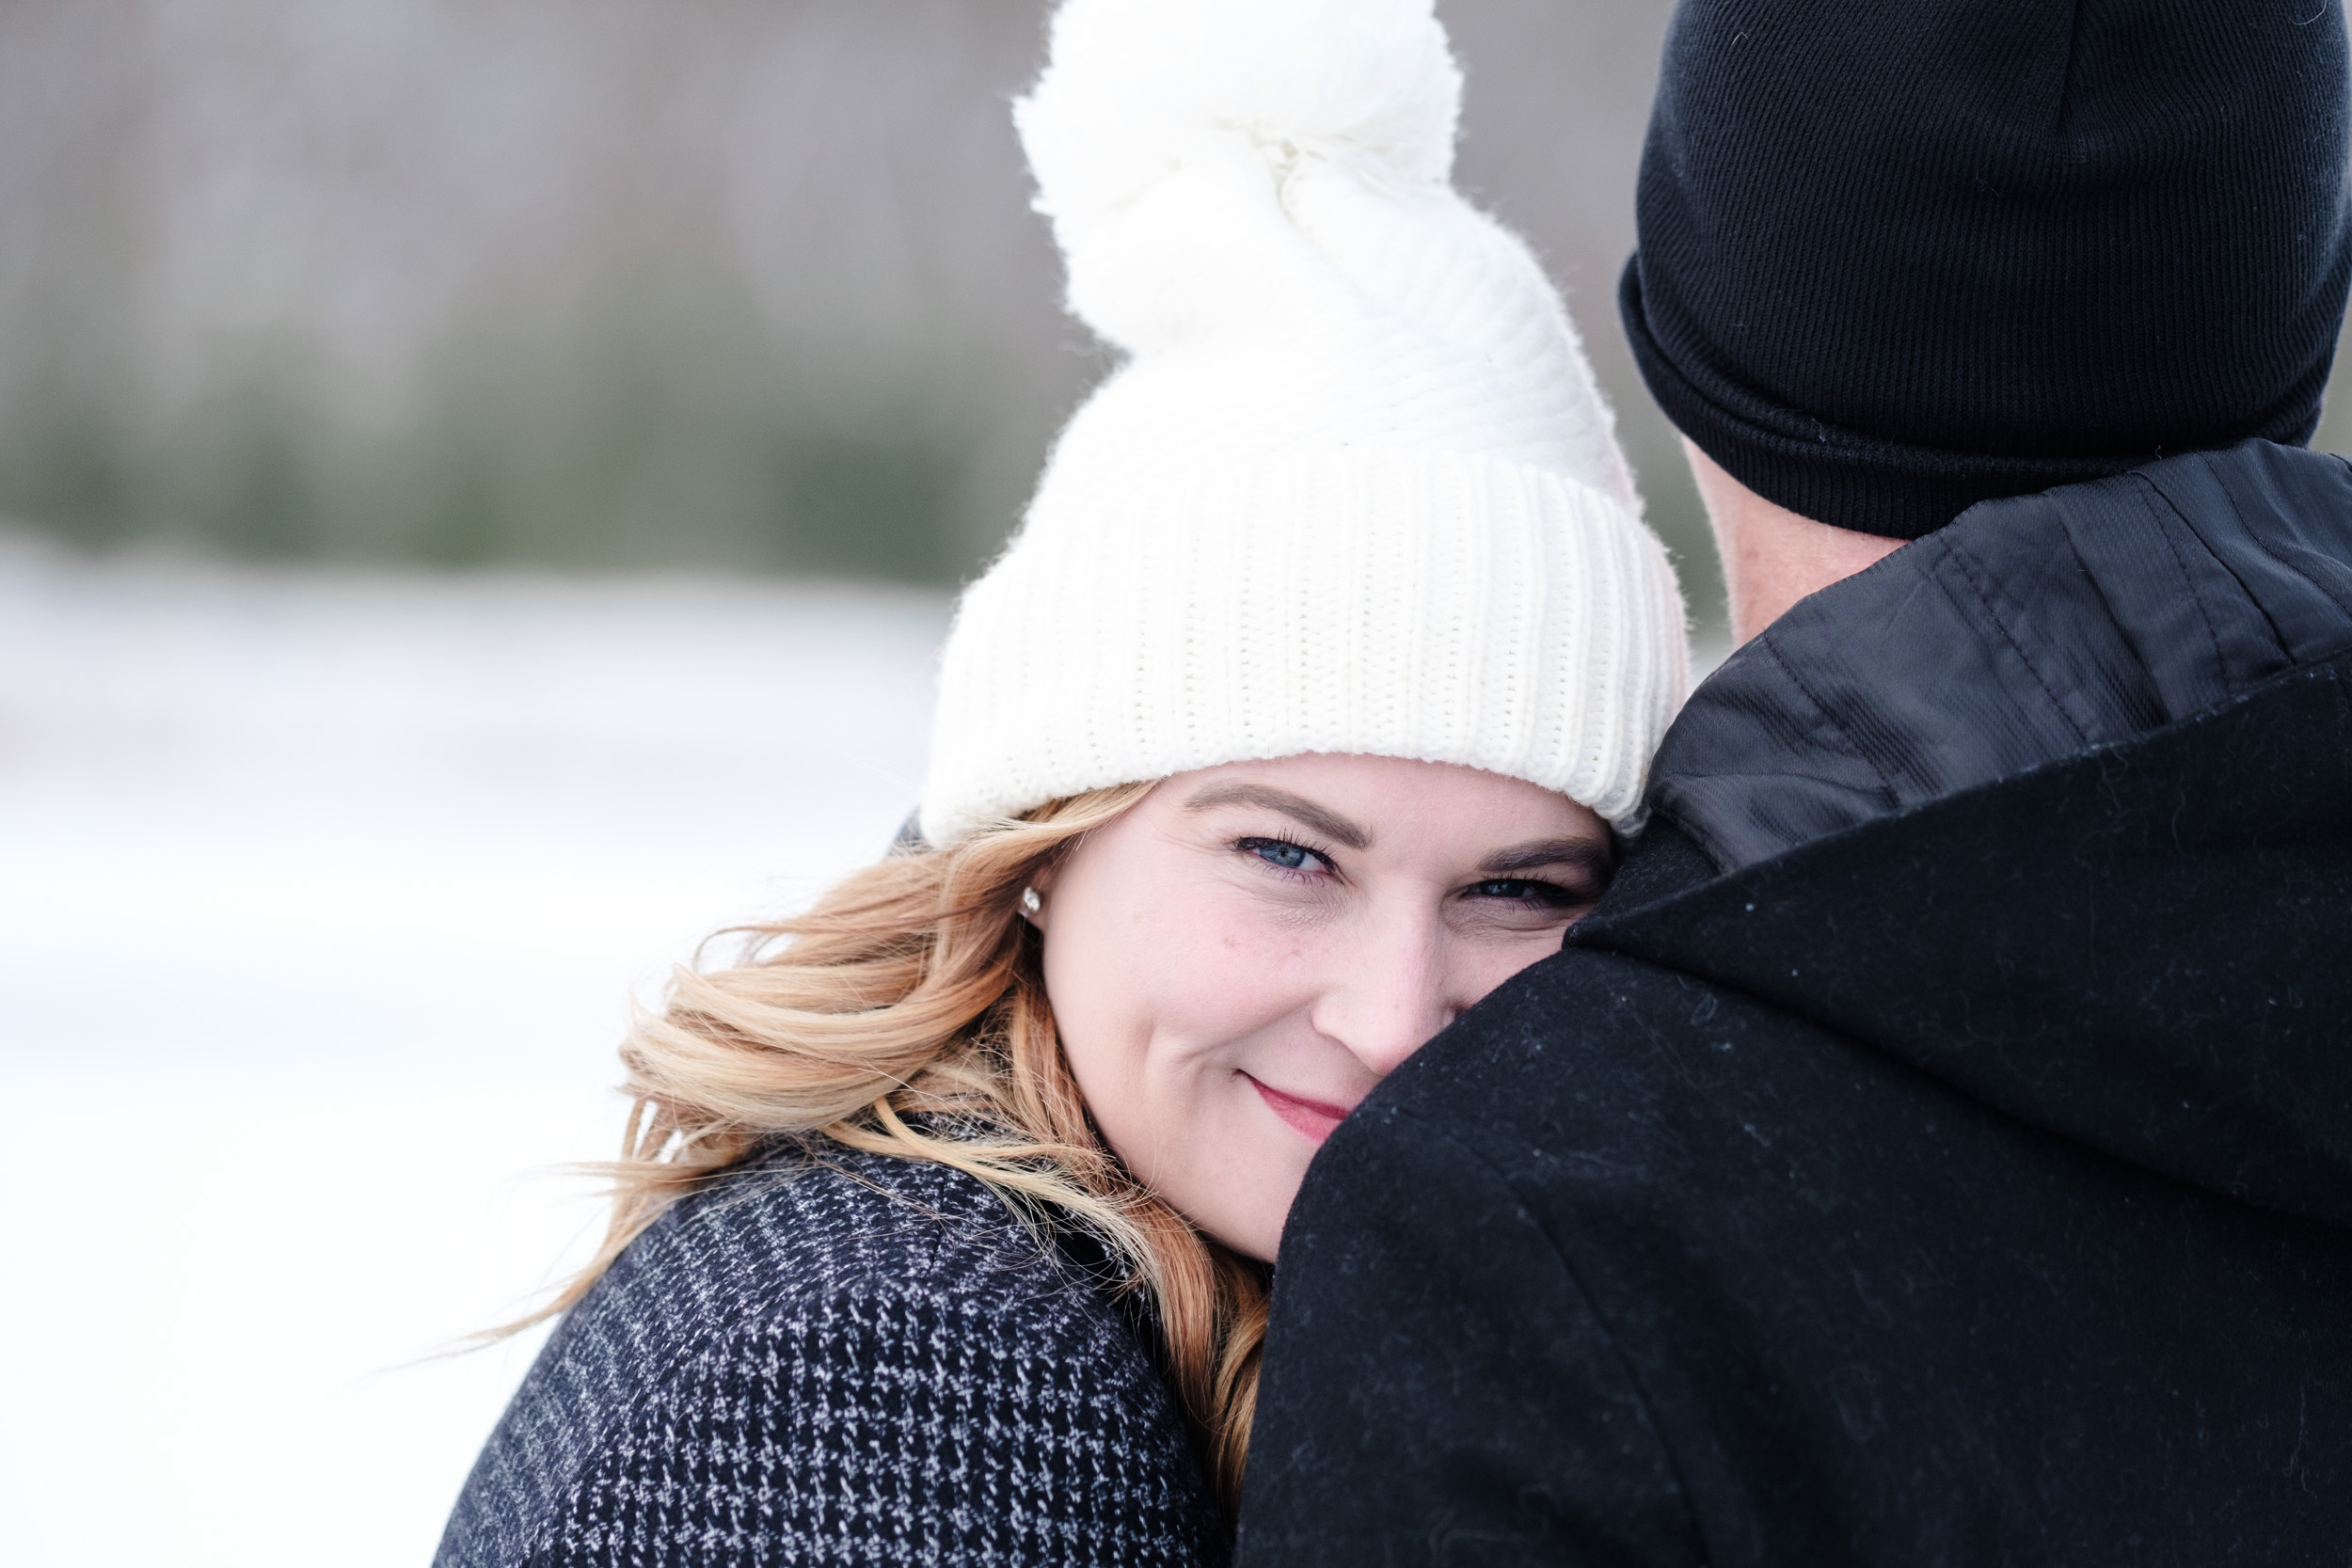 brides blue eyes as she looks back during engagement session in a winter wonderland at the pavilion at orchard ridge farms.